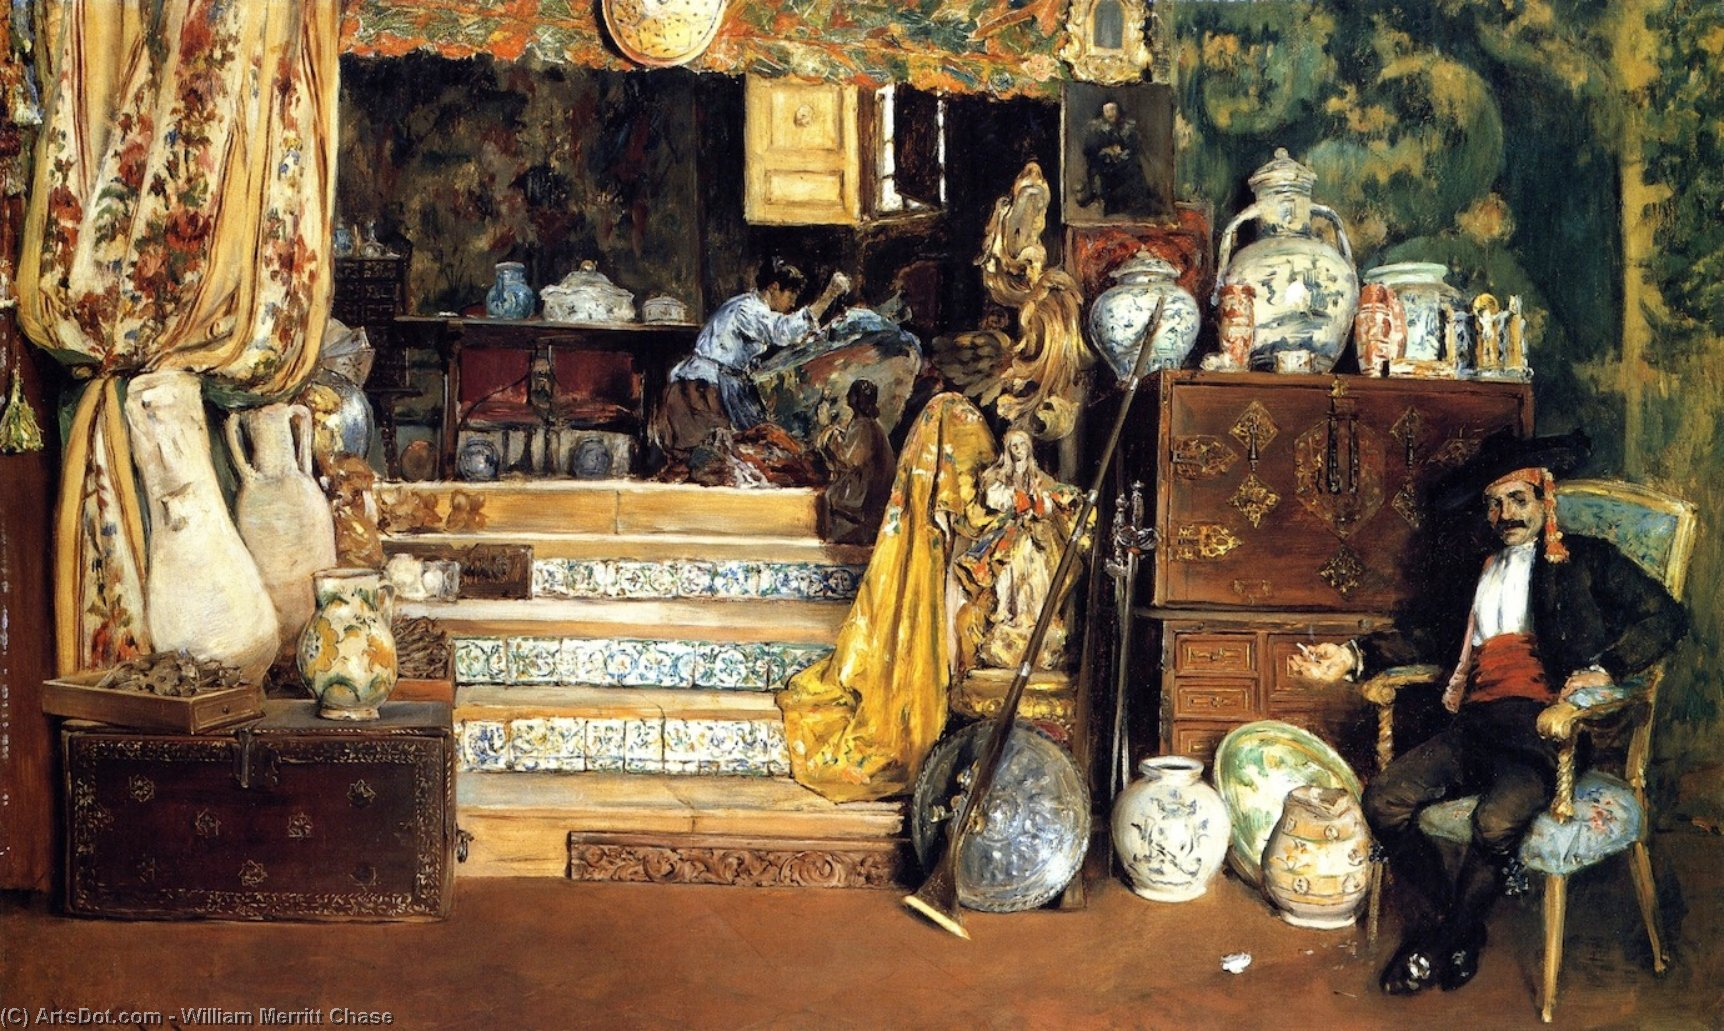 Spanish Bric-a-Brac Shop (also known as A Spanish Curiosity Shop), Oil On Canvas by William Merritt Chase (1849-1916, United States)